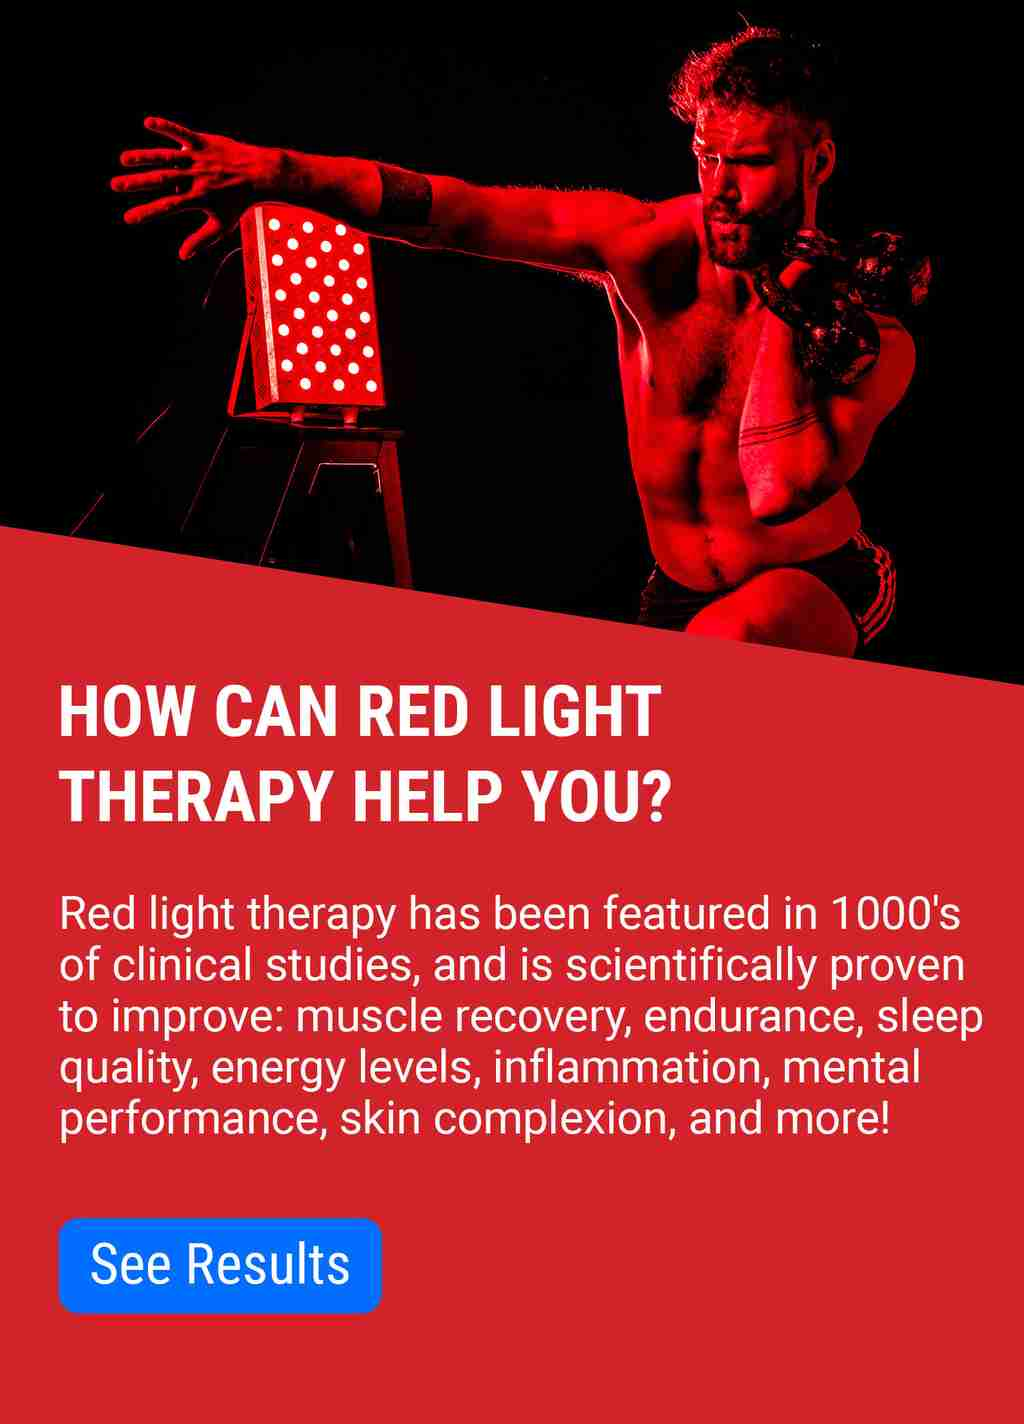 How can red light therapy help you?